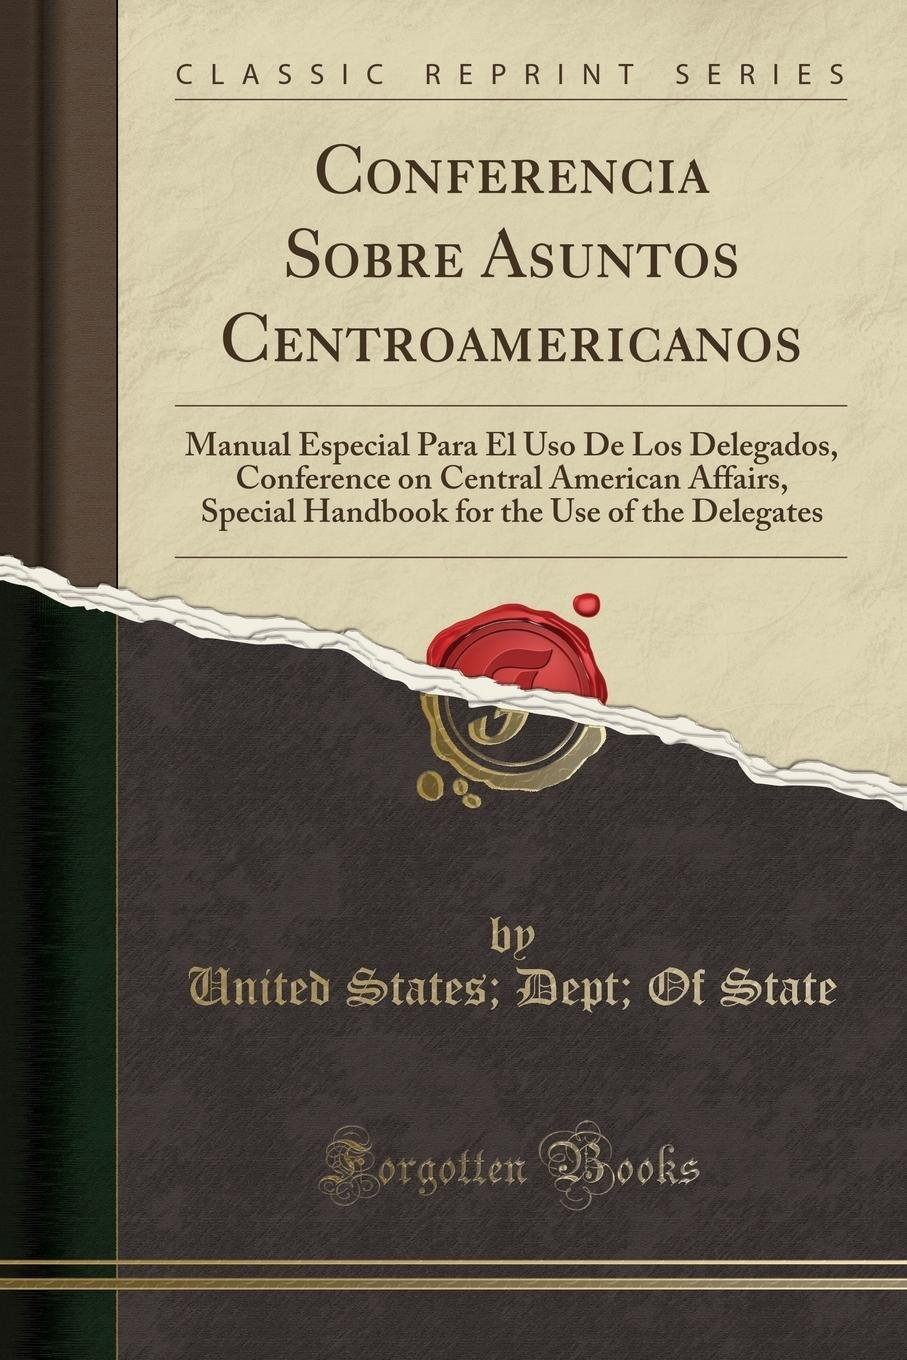 Download Conferencia Sobre Asuntos Centroamericanos: Manual Especial Para El Uso De Los Delegados, Conference on Central American Affairs, Special Handbook for the Use of the Delegates (Classic Reprint) ebook